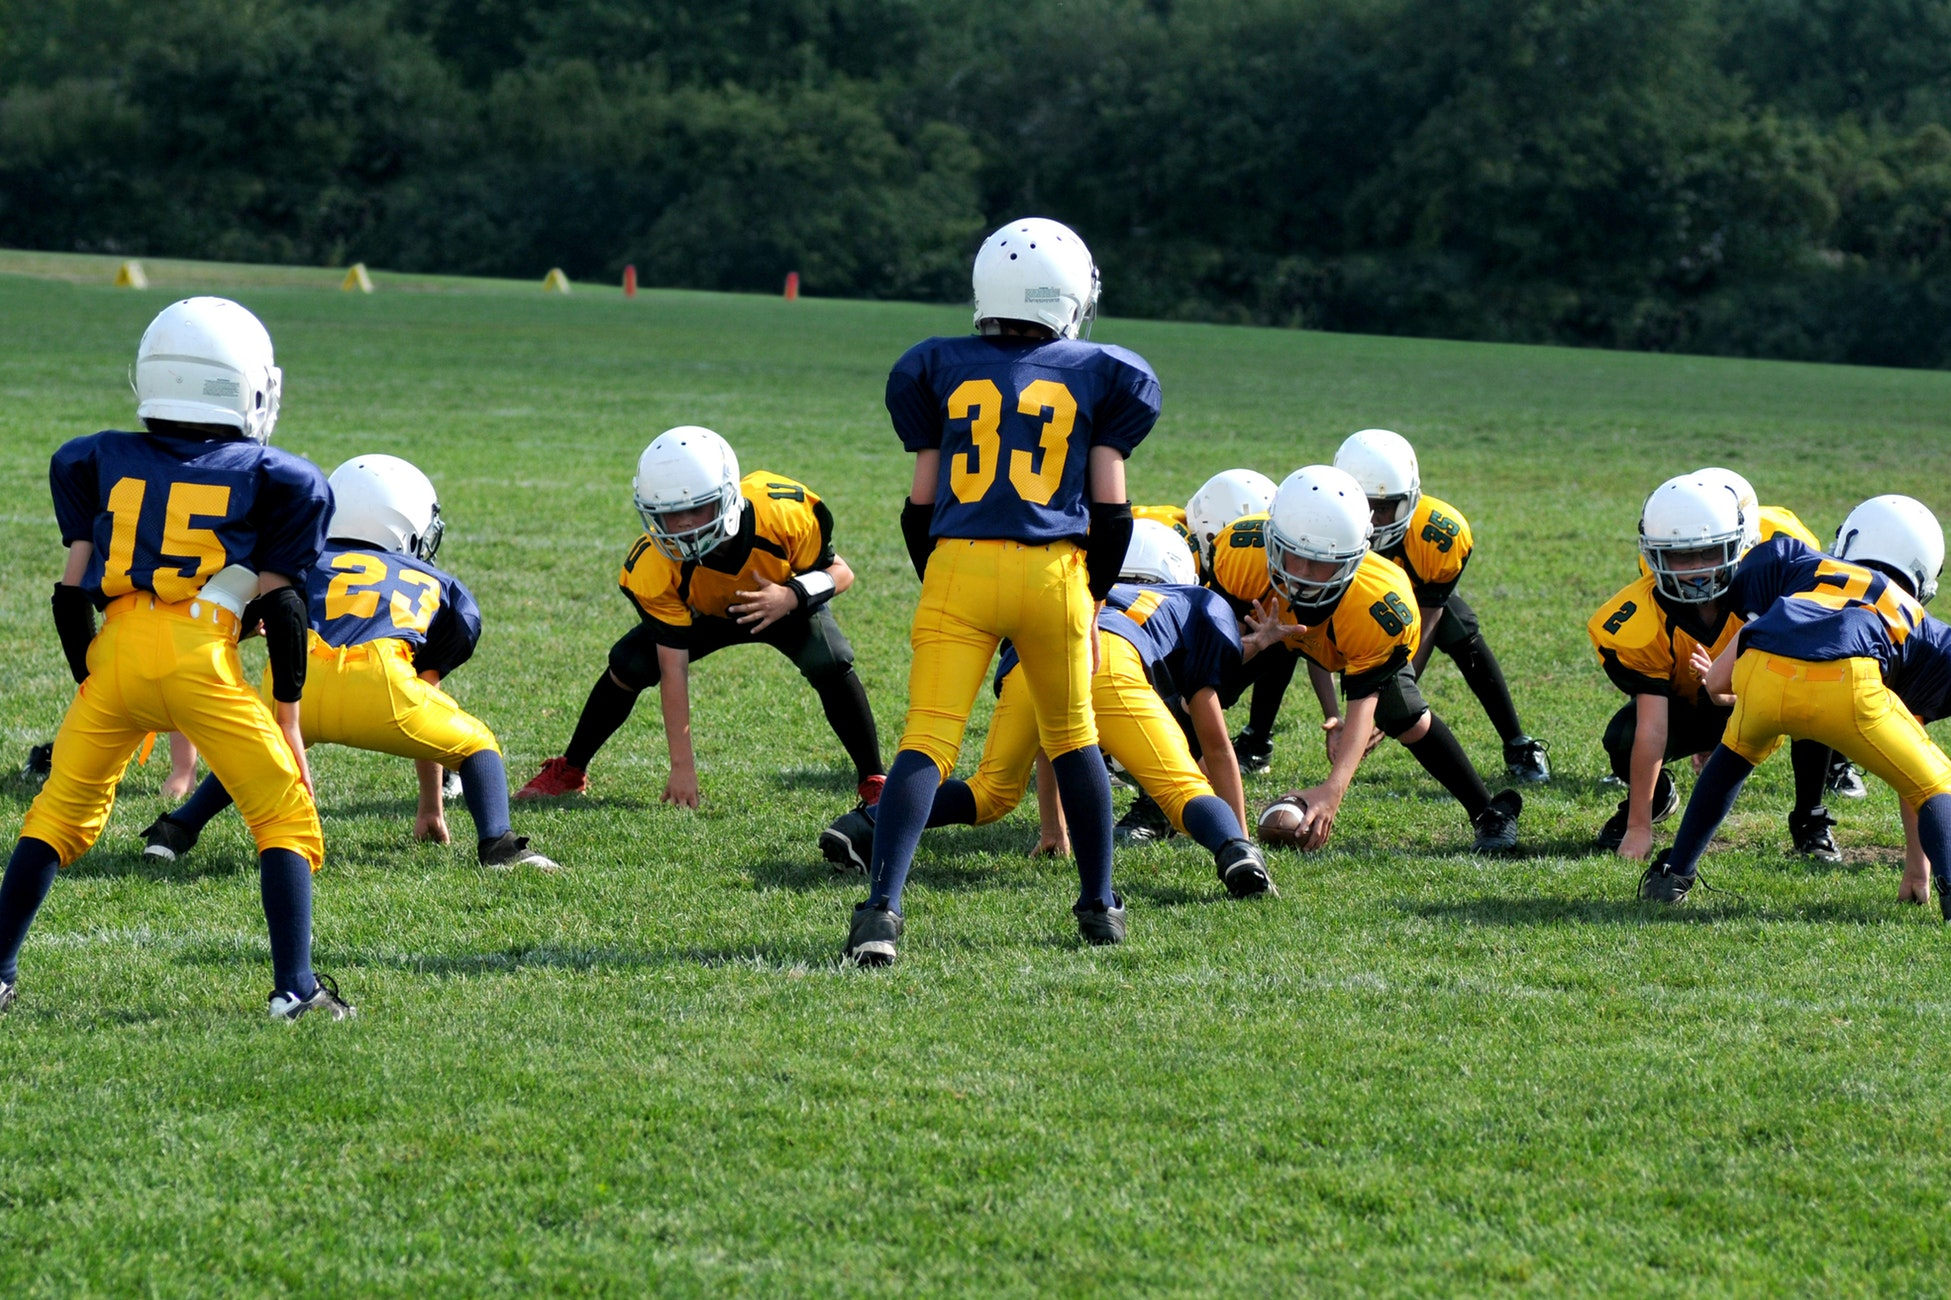 best youth football helmets